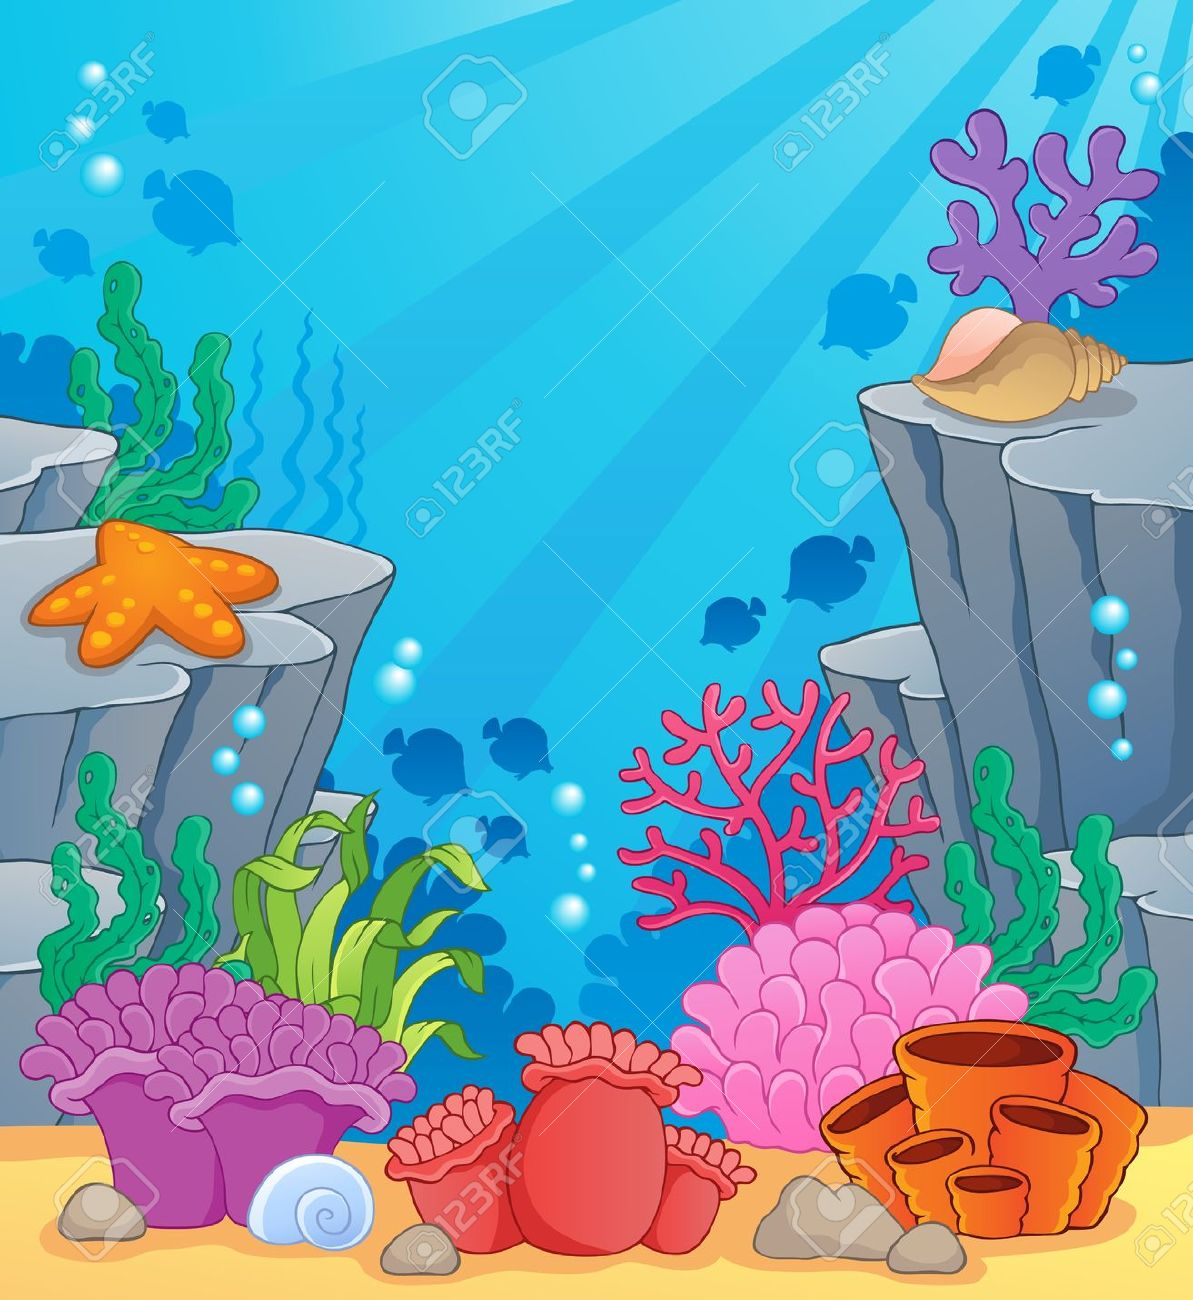 Underwater ocean clipart 20 free Cliparts | Download ...